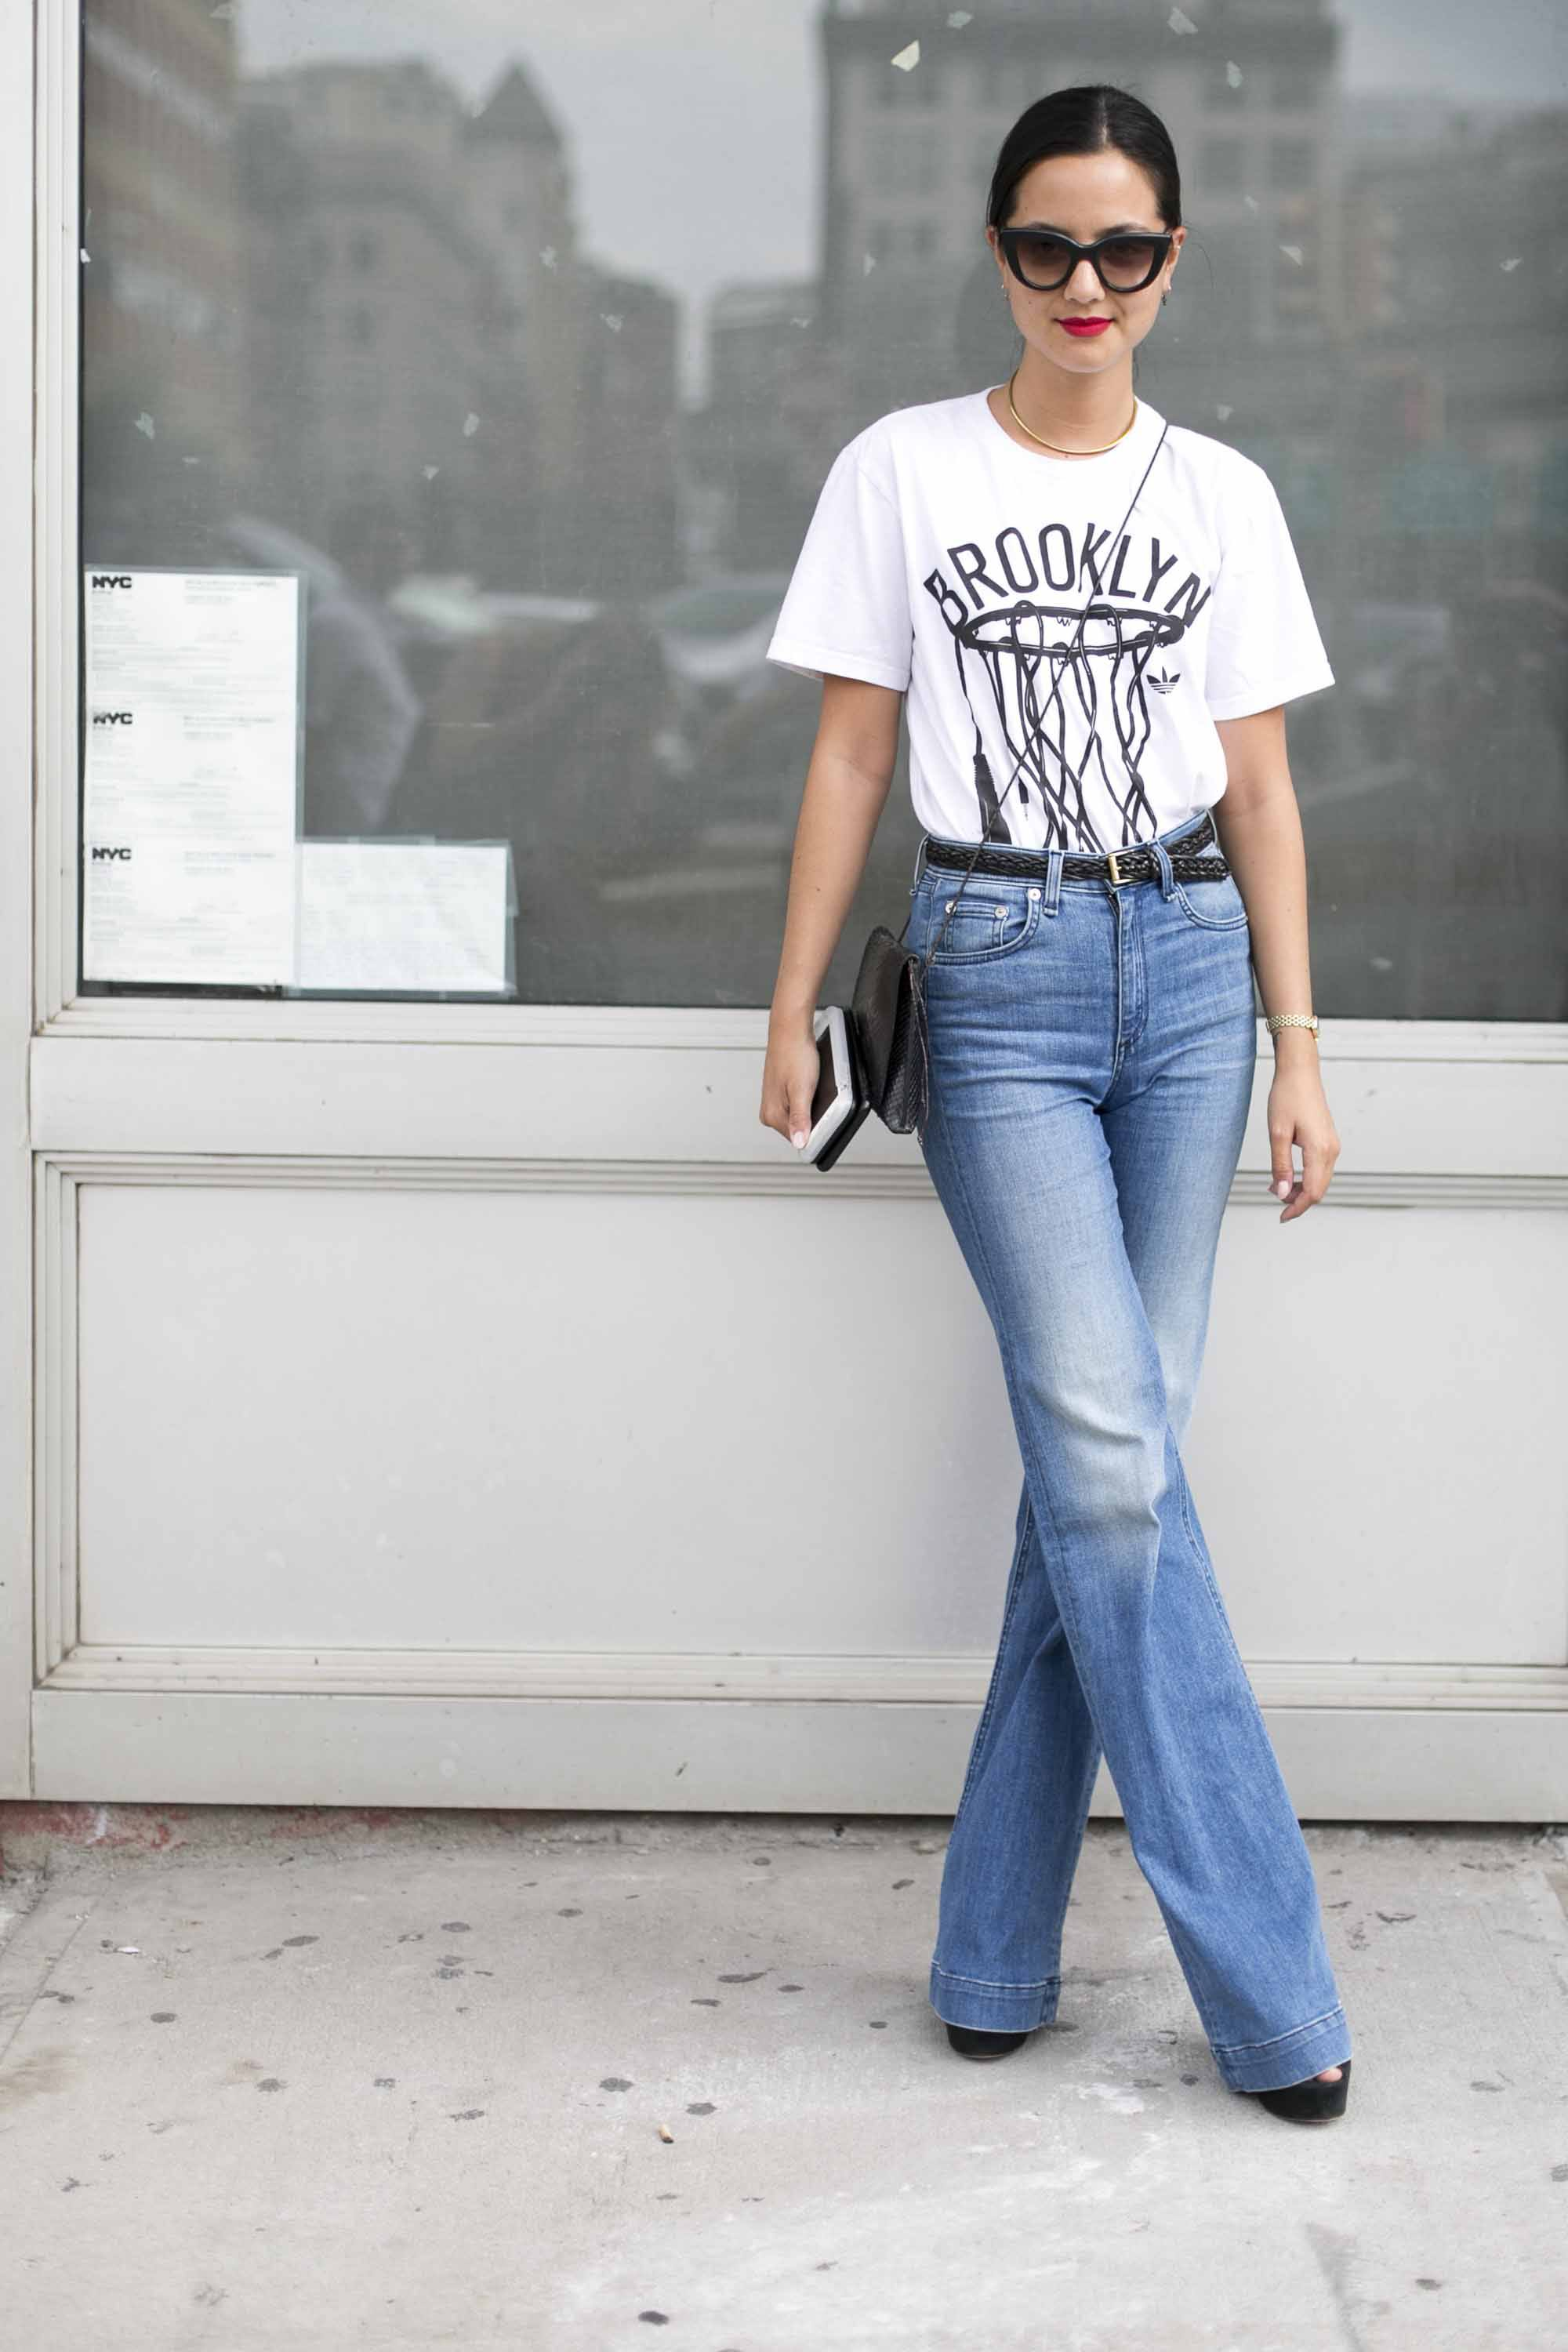 a casual look of a woman standing in front of a store wearing jeans and white t-shirt